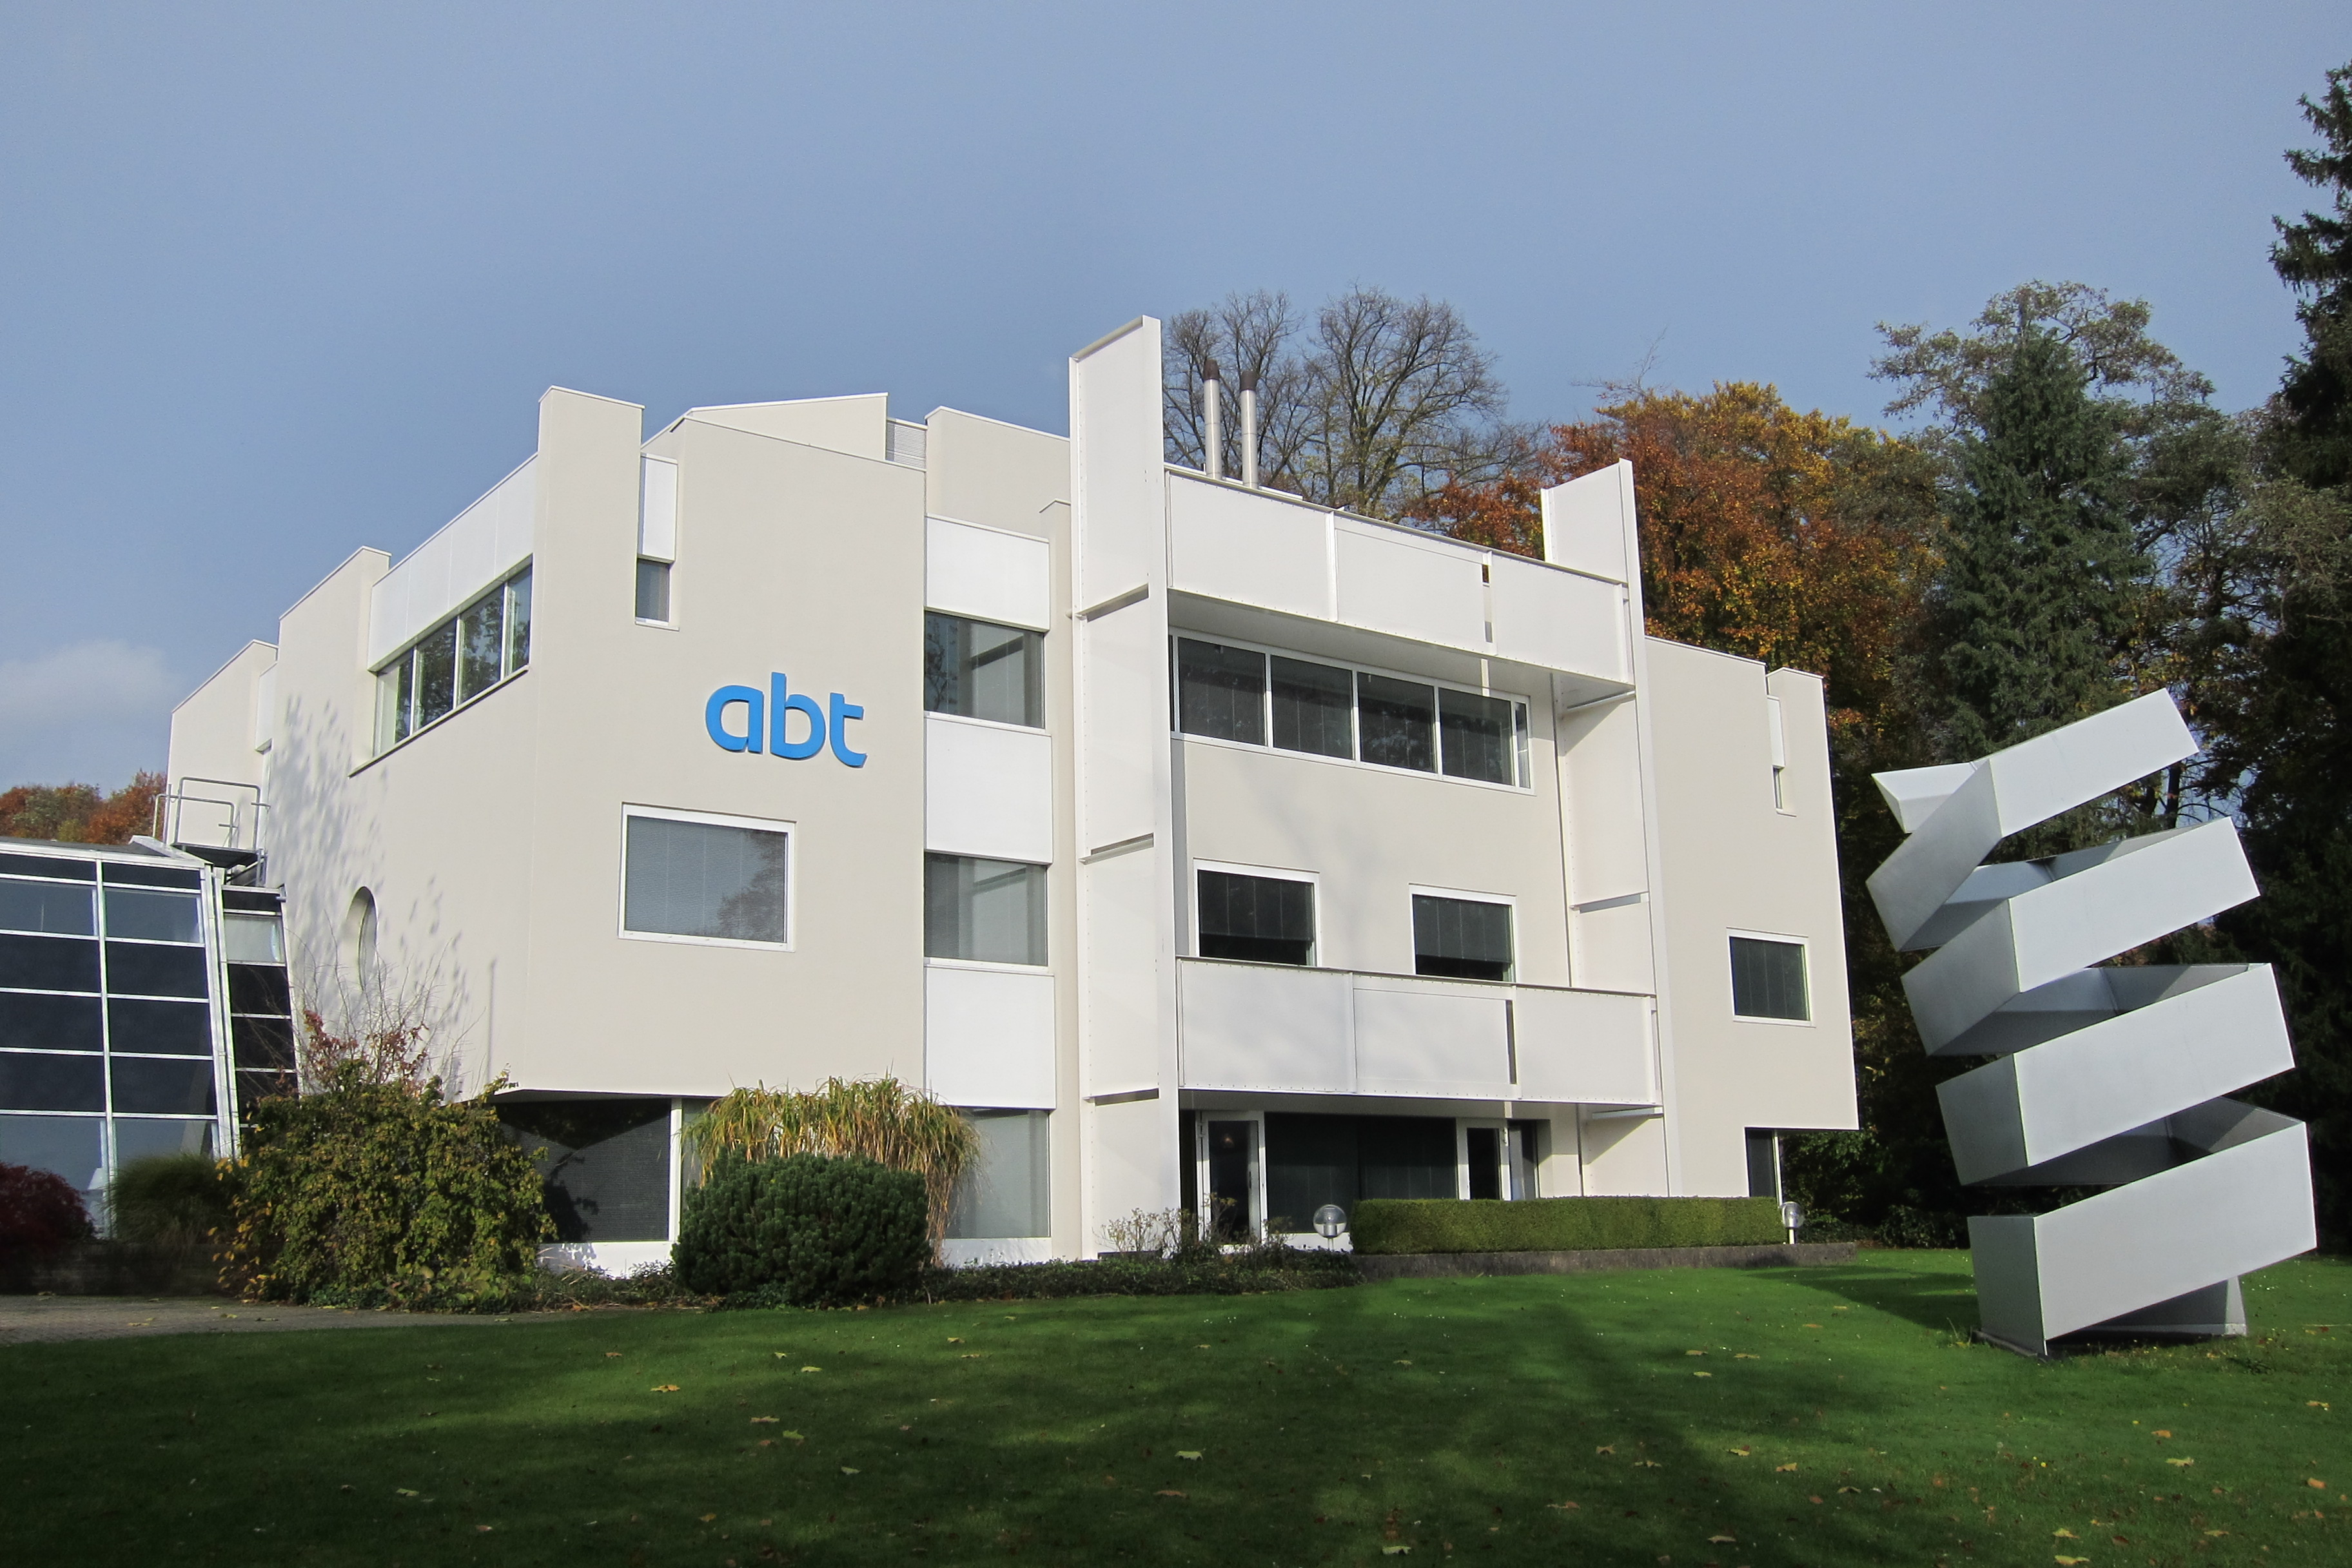 File:The ABT main office and art in the garden at Velp - panoramio ...